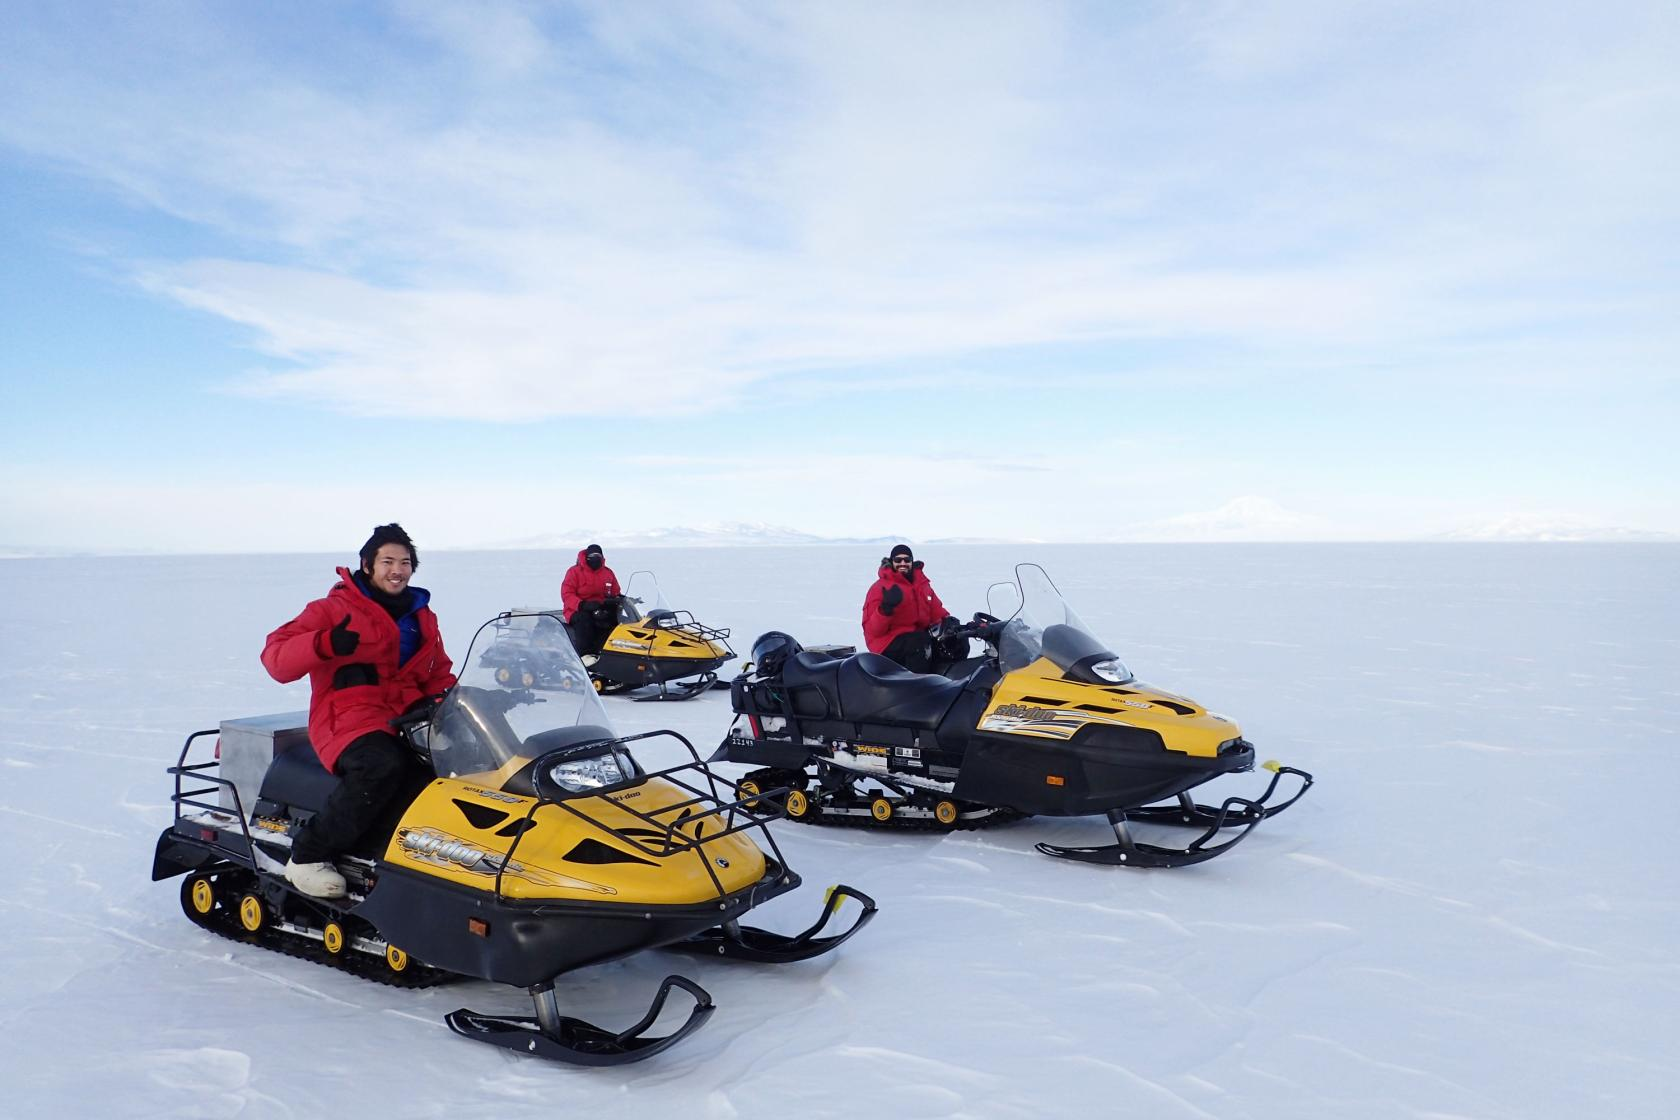 Three students of the Hofmann lab riding snowmobiles in Antarctica